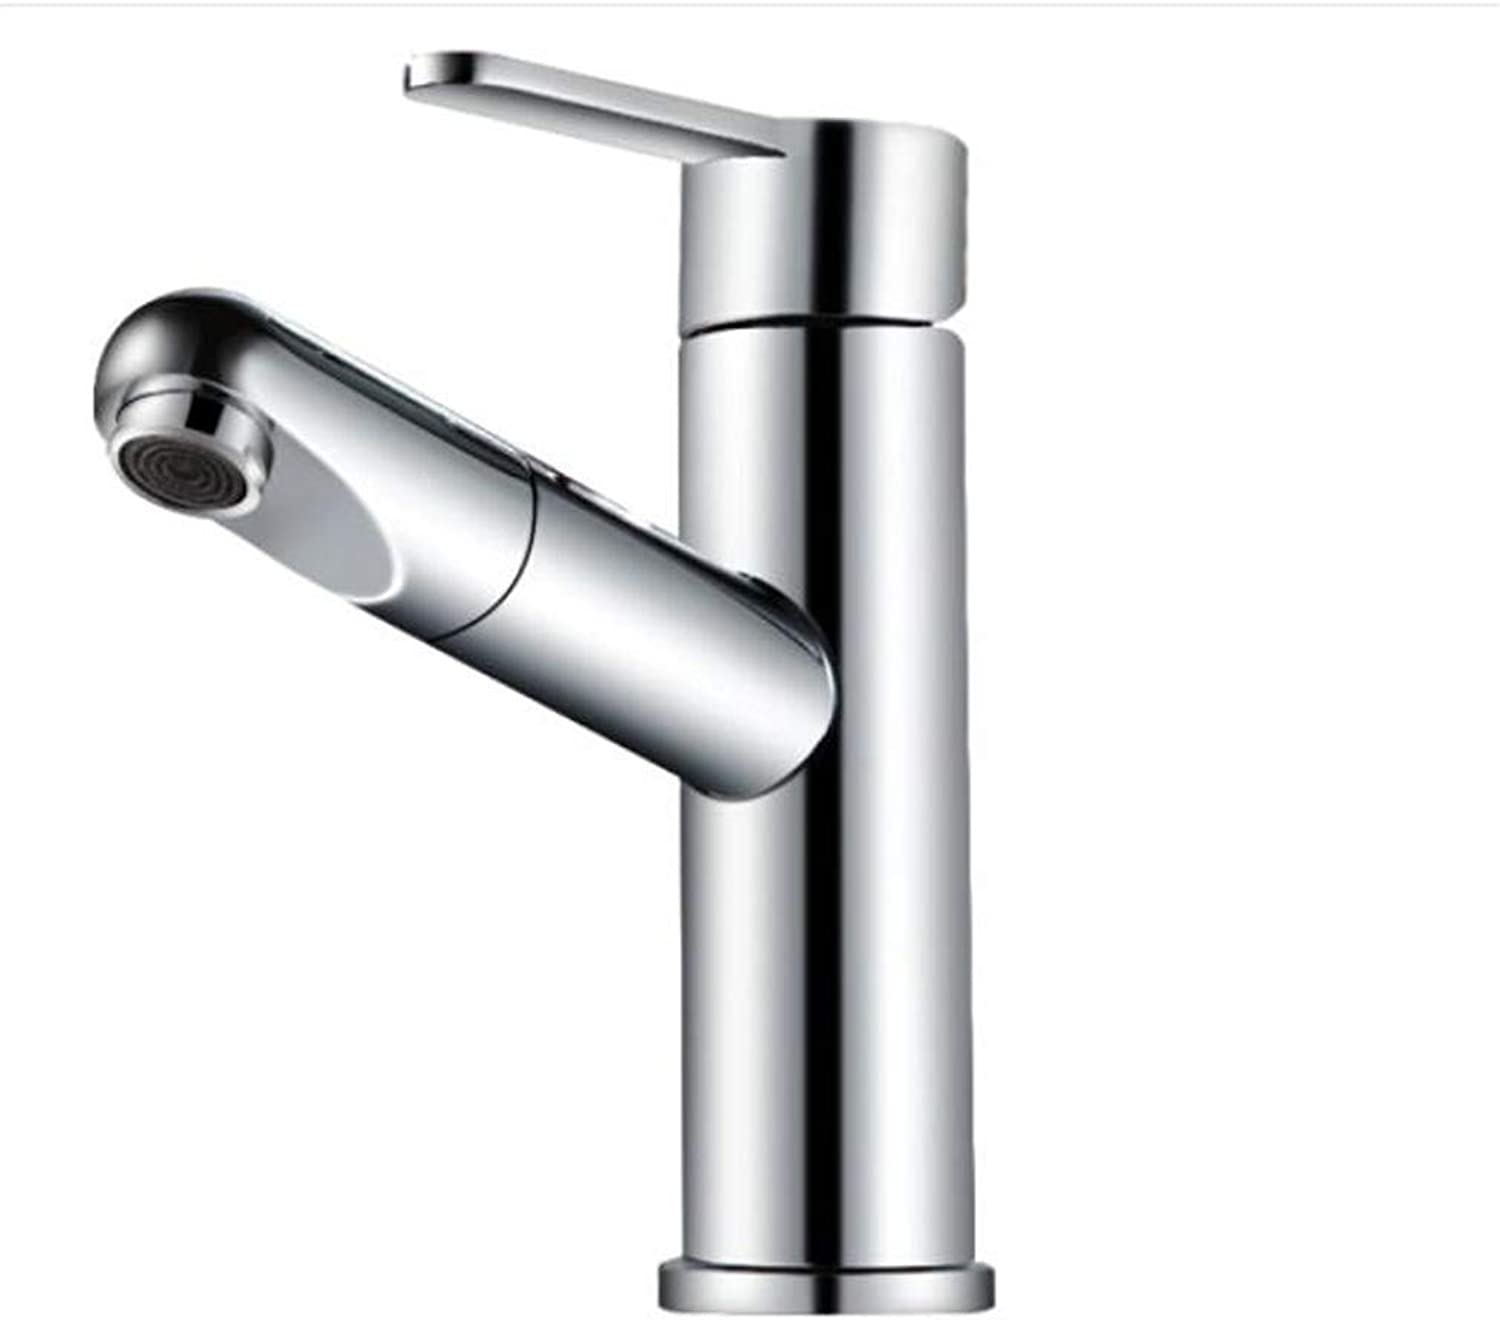 Bathroom Sink Basin Lever Mixer Tap Copper Basin Faucet Washbasin Table Basin Cold and Hot Pumping Faucet